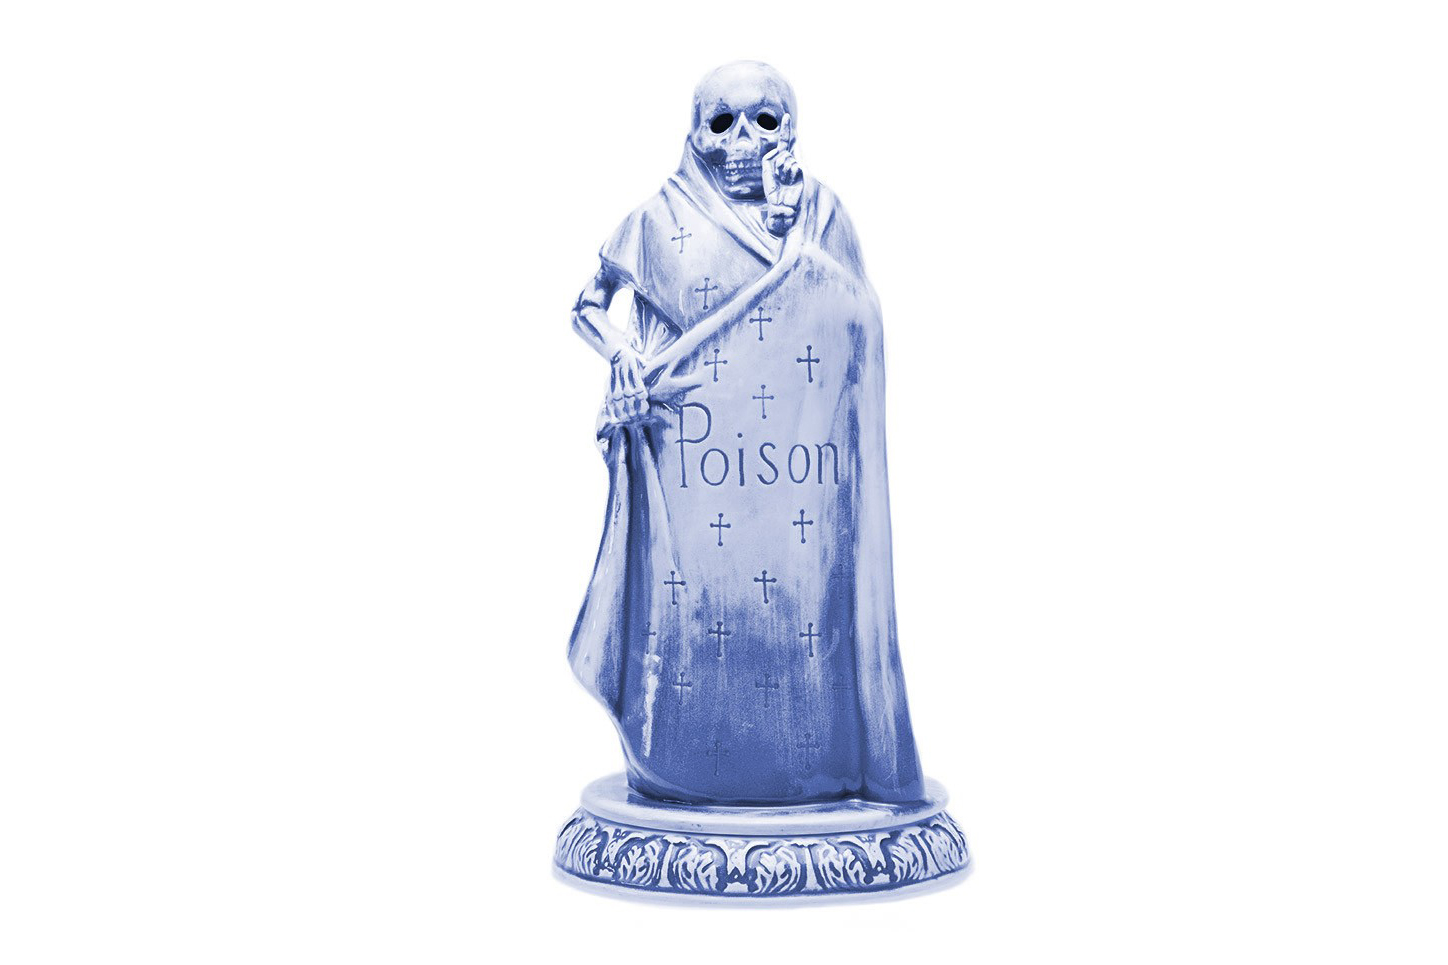 NEIGHBORHOOD Booze Reaper Incense Chamber